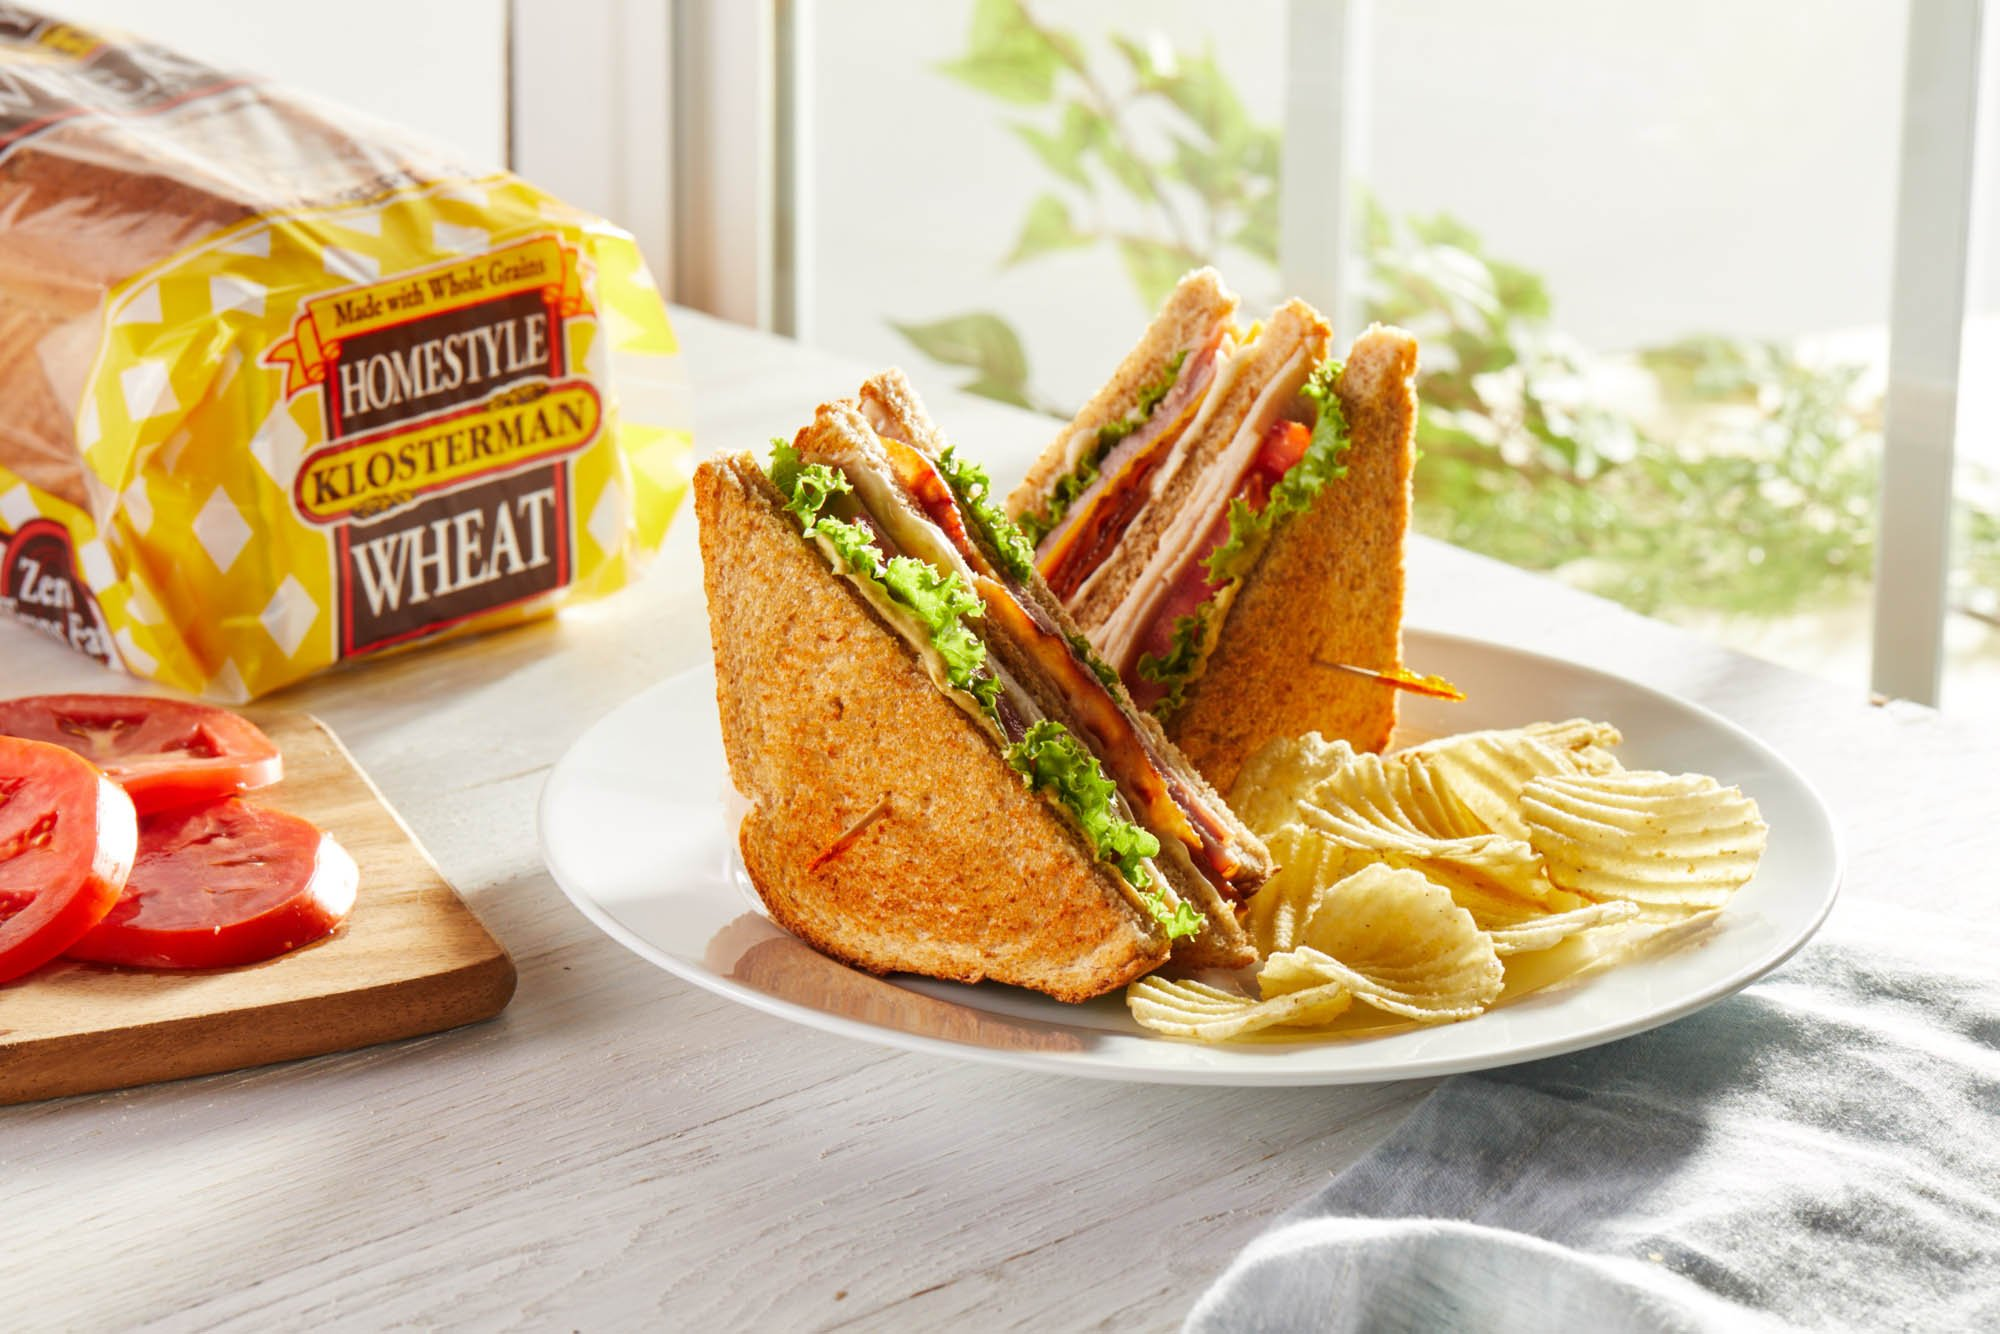 A beautiful double decker sandwich with chips and whole wheat bread